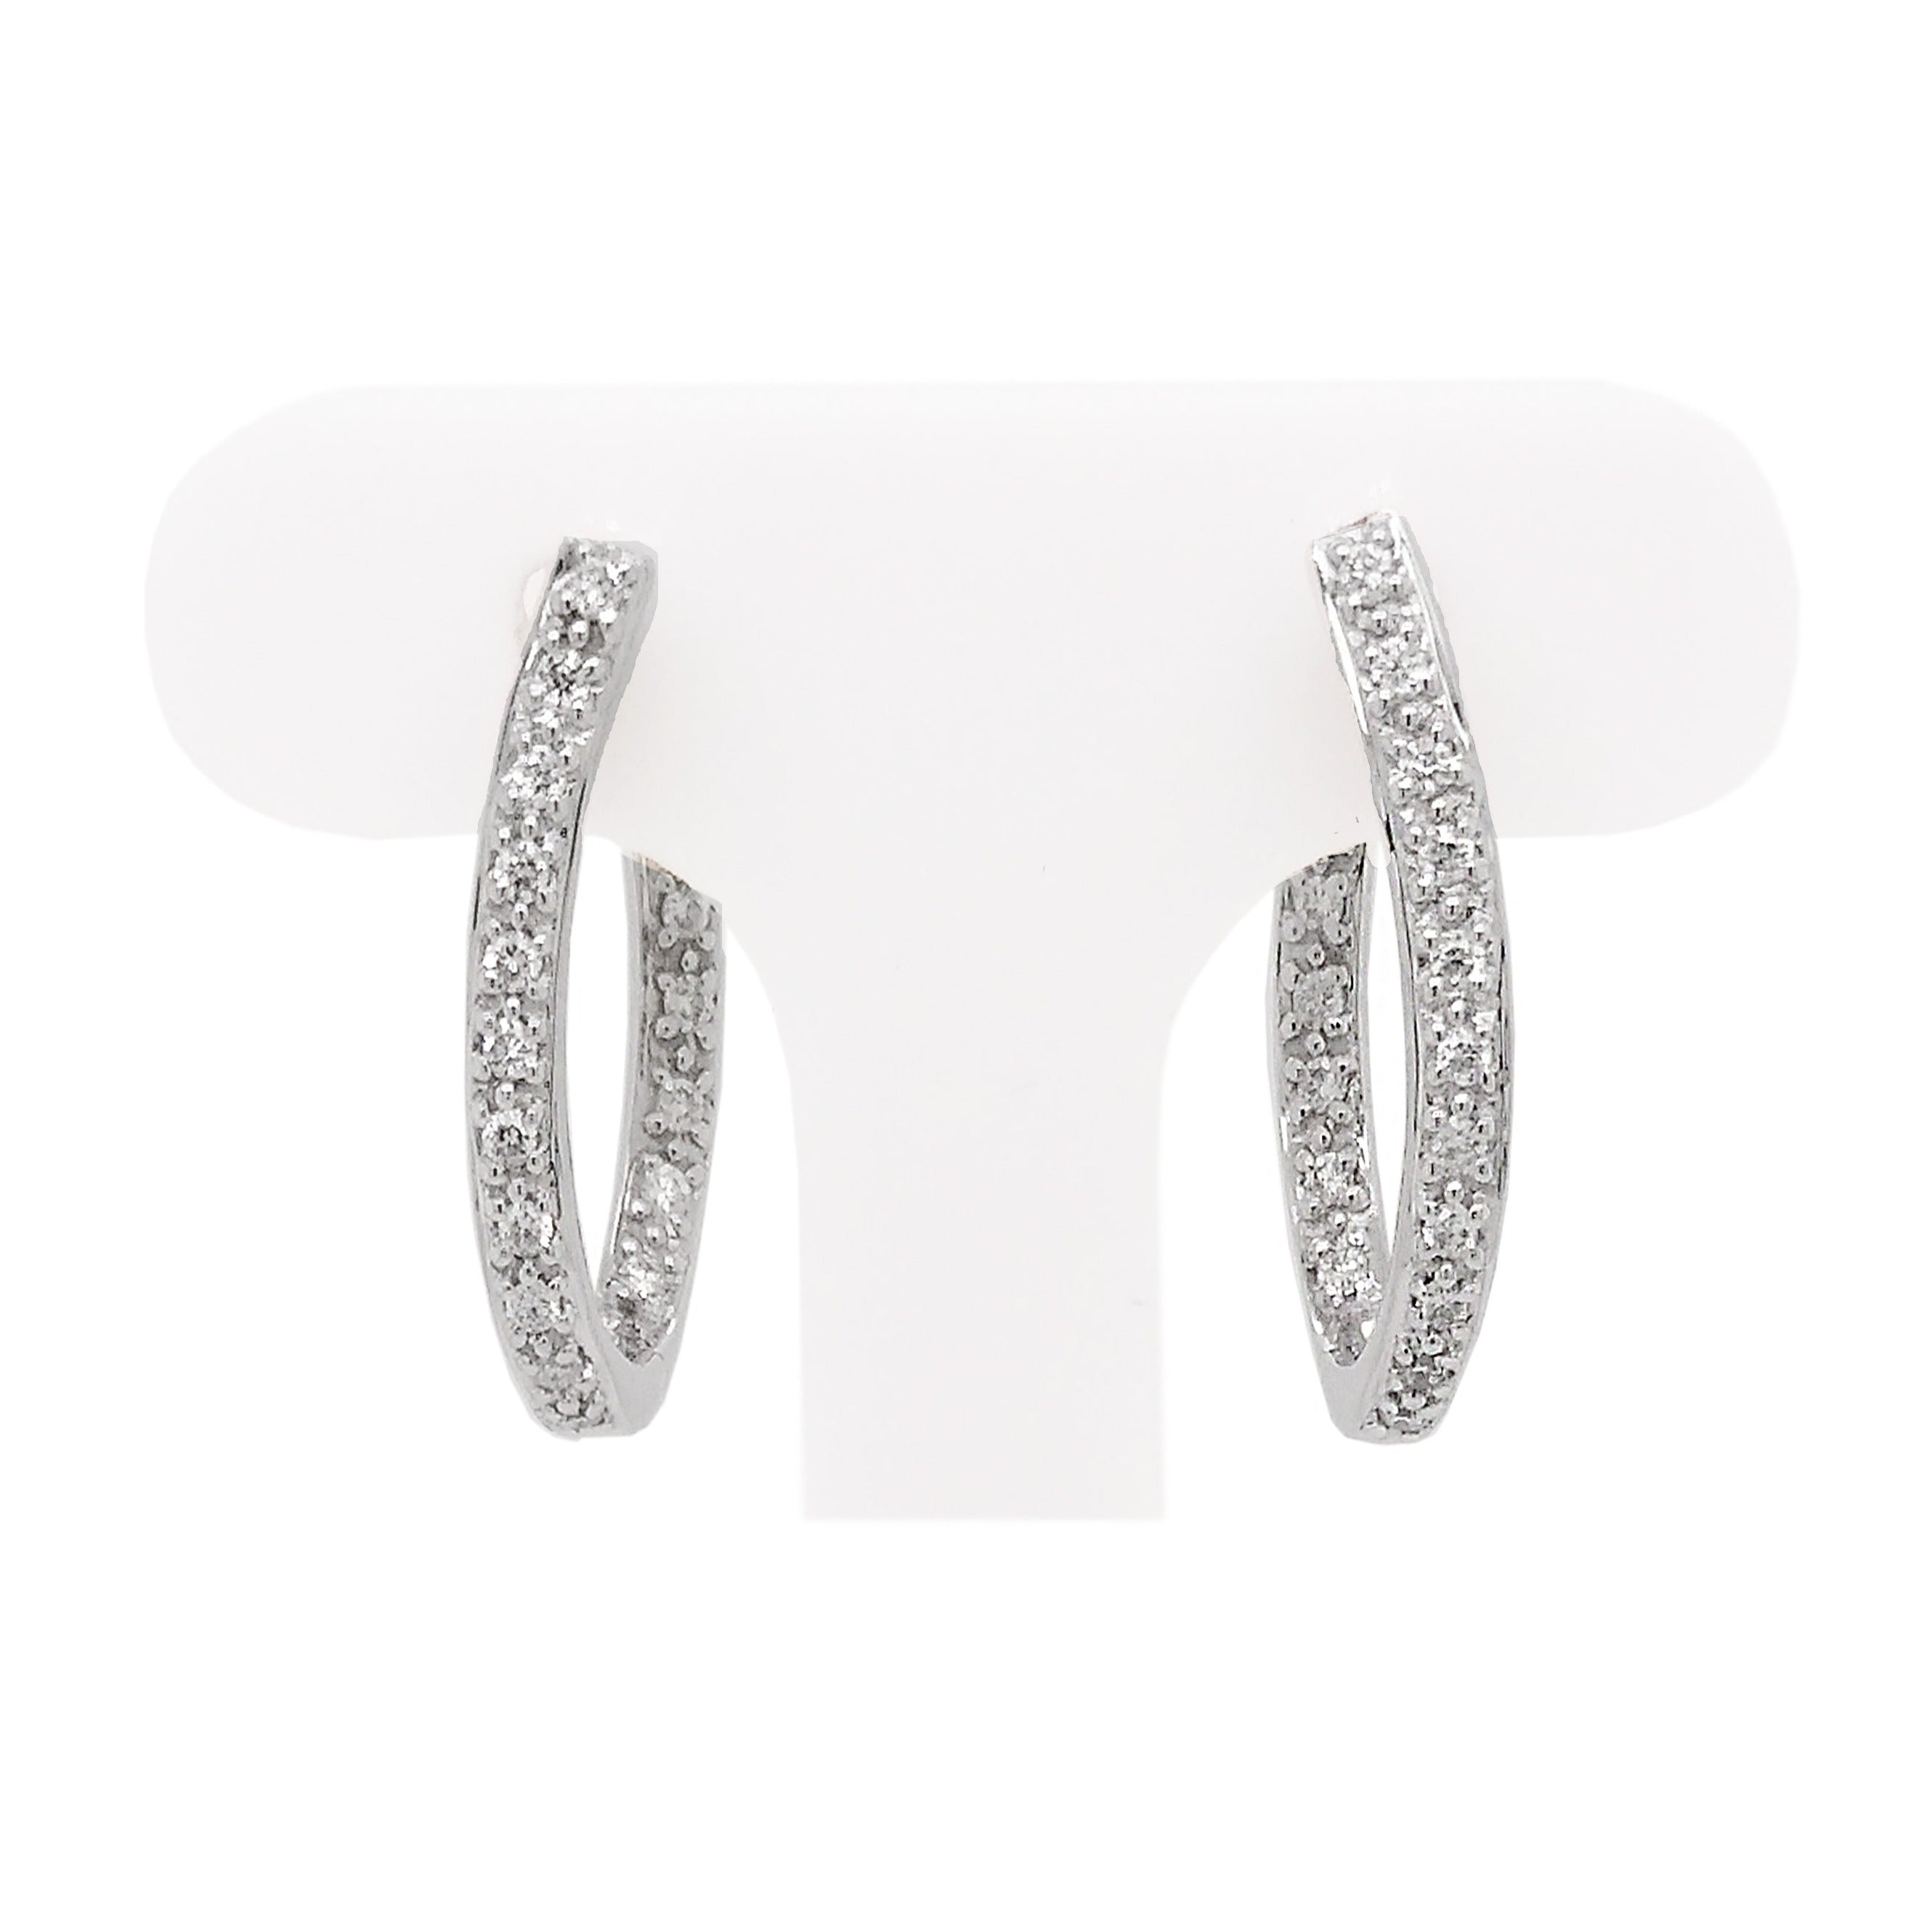 18ct White Gold Pave Diamond Shaped Hoop Earrings